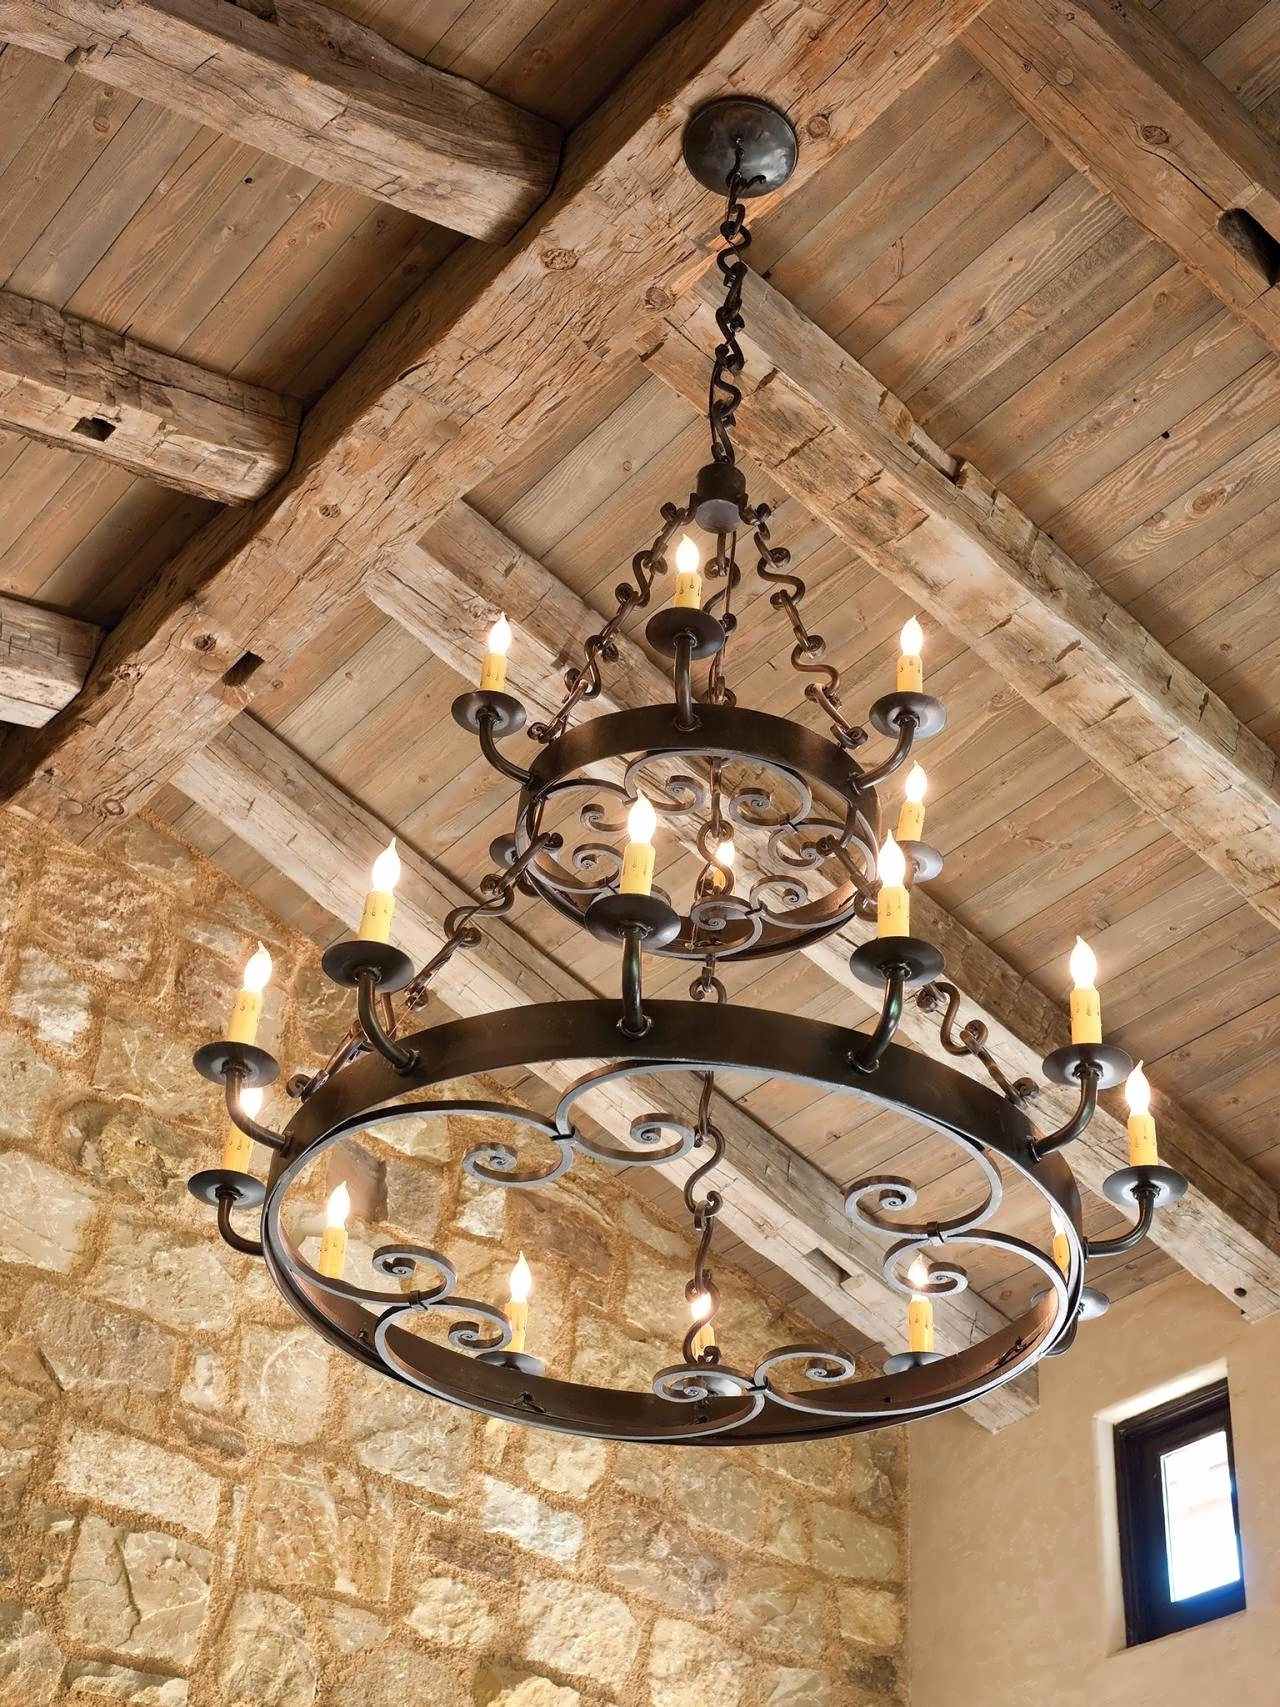 Chandeliers : Small Rustic Chandelier Awesome Small Rustic For Most Current Small Rustic Chandeliers (View 8 of 20)